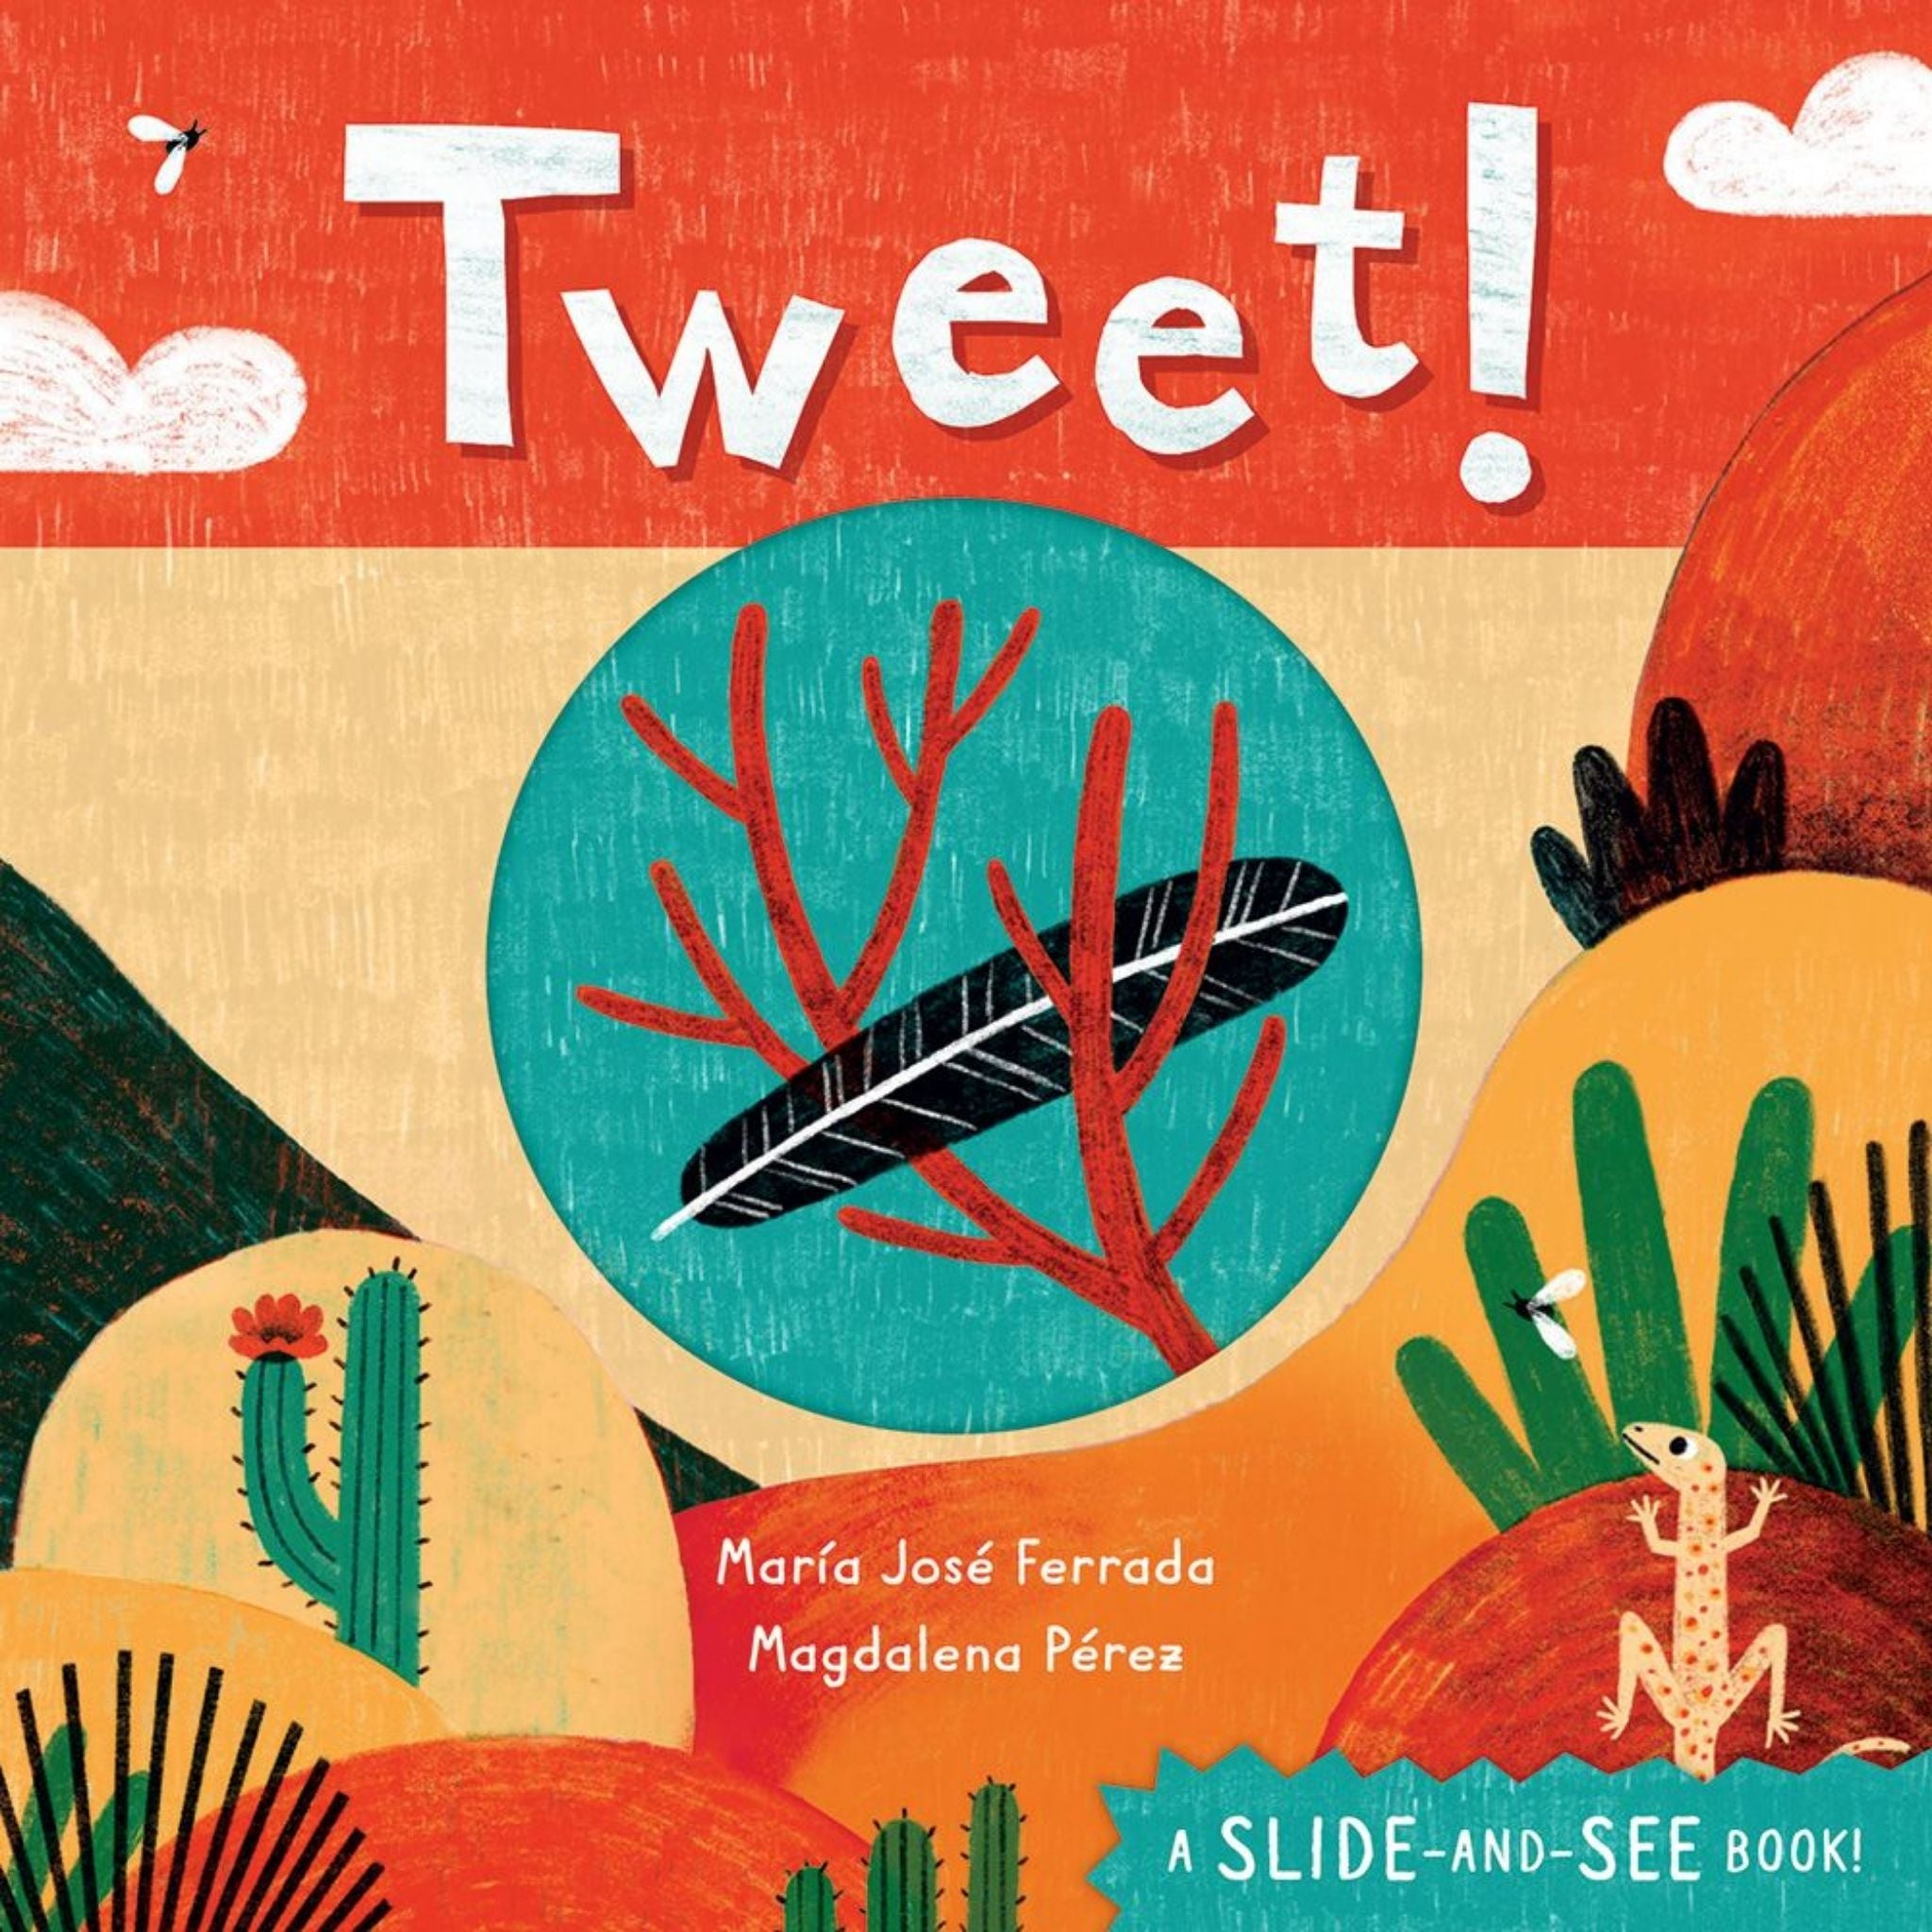 tweet book cover by ferrada and perez slide and see book